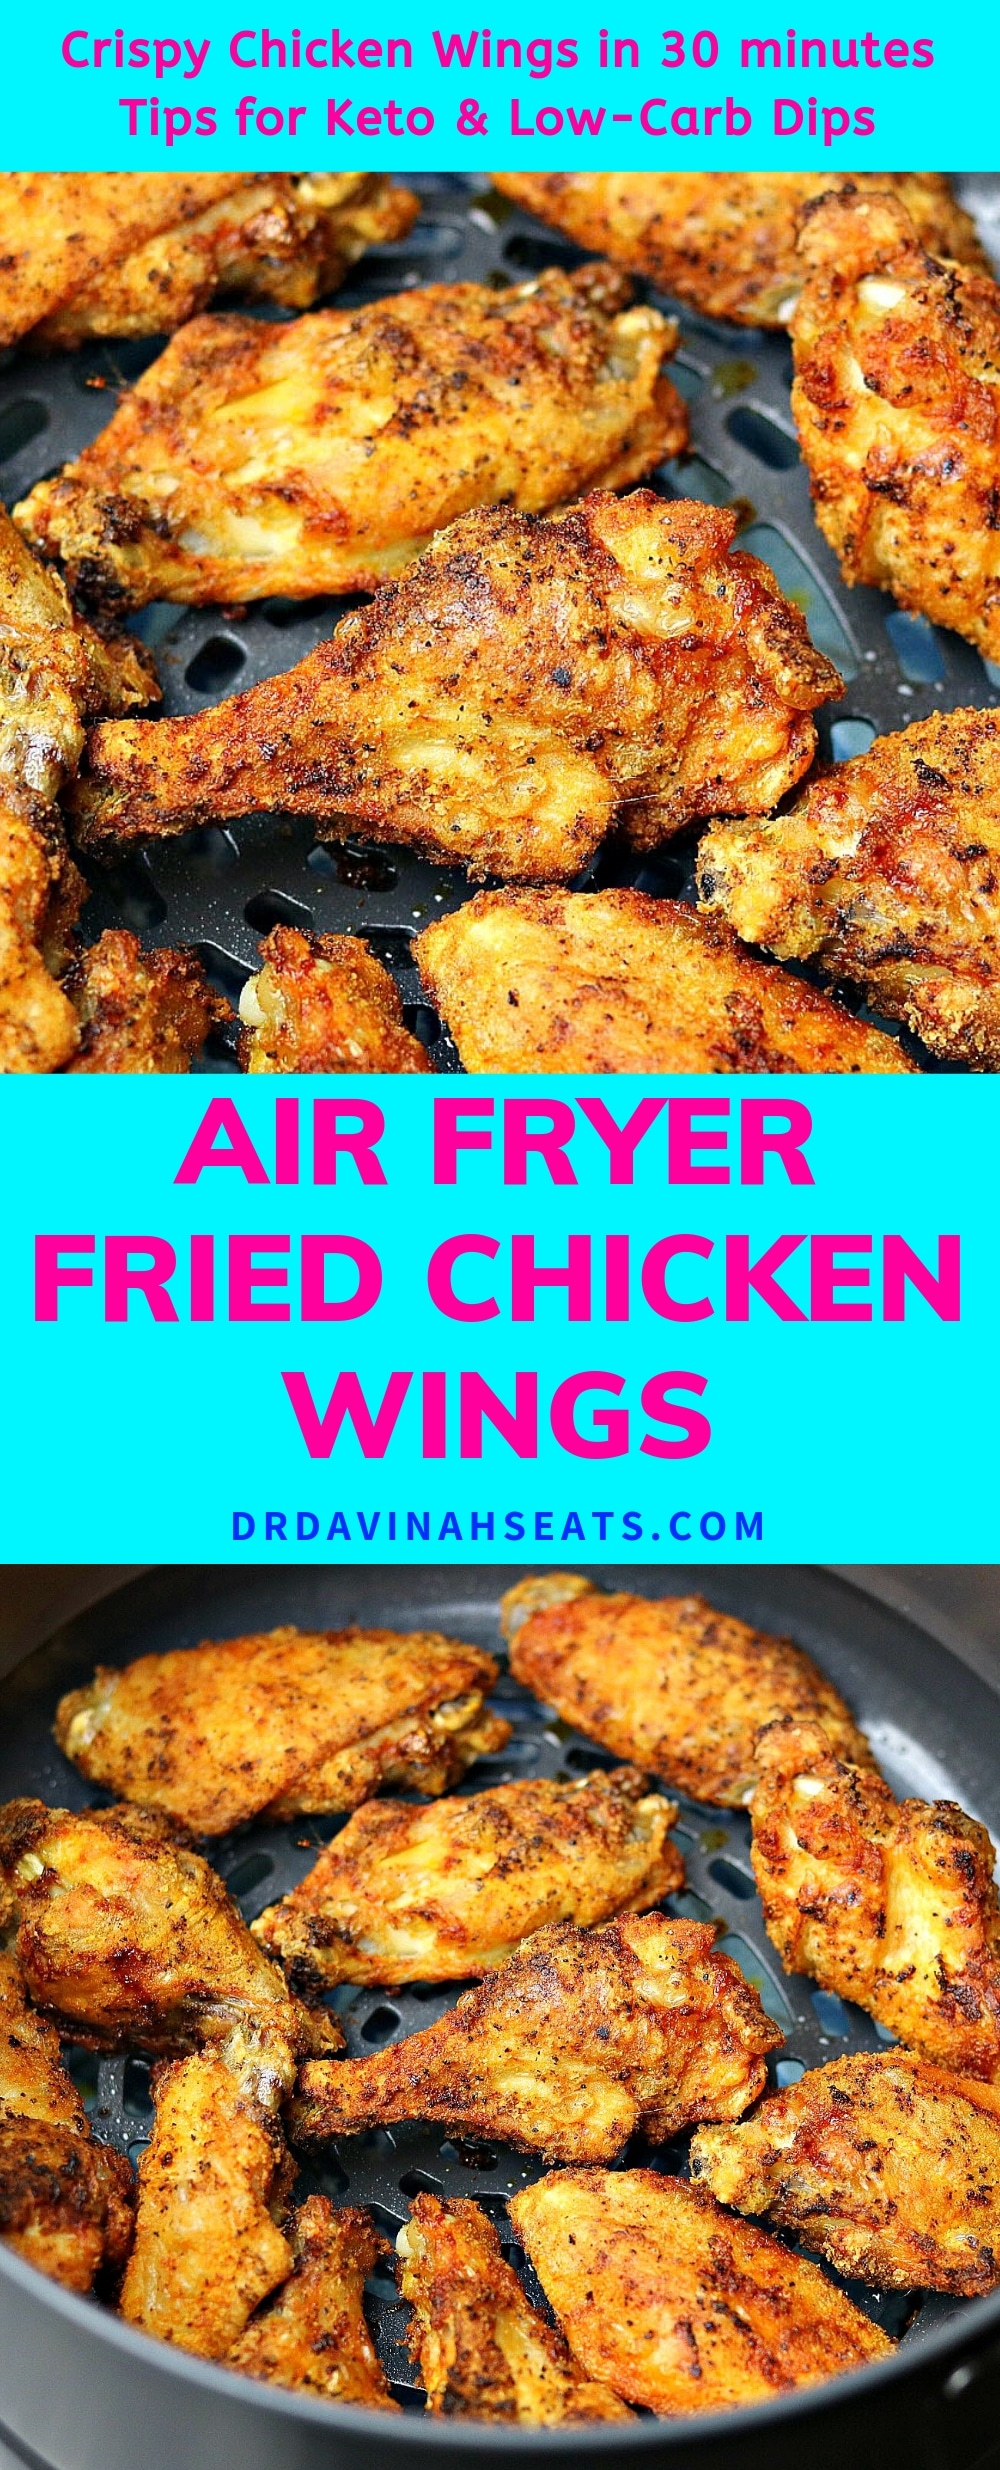 Ninja Air Fryer Fried Chicken Wings Recipe (With images